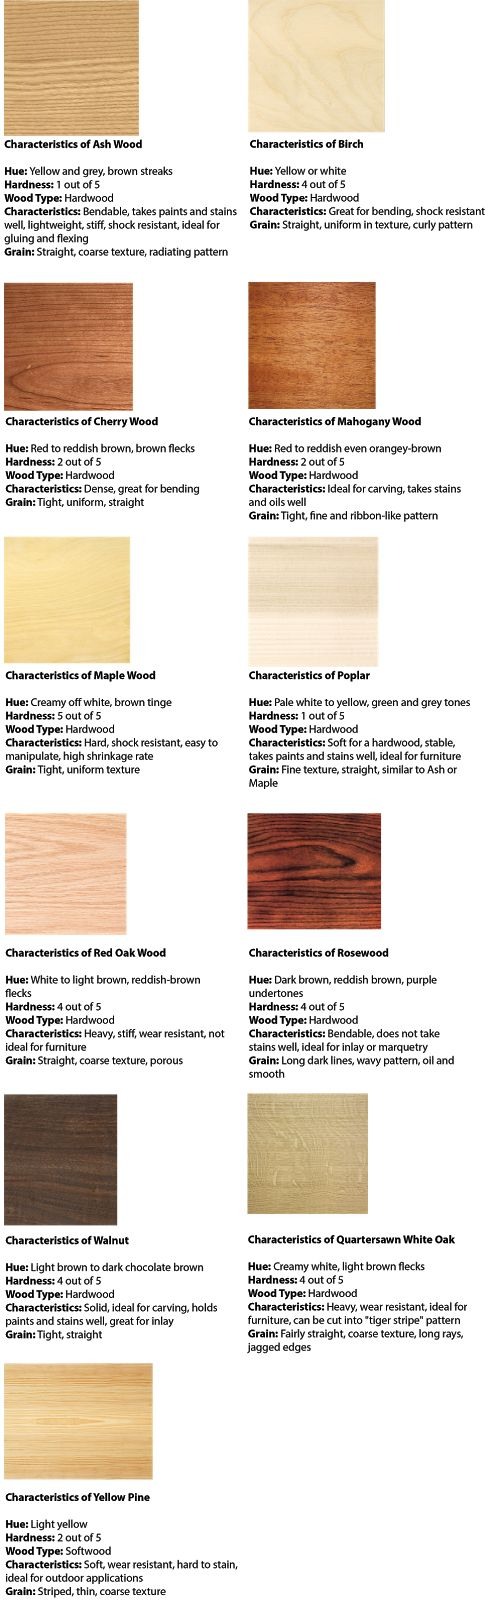 Learn your wood types including wood grains, hardness, and characteristics!